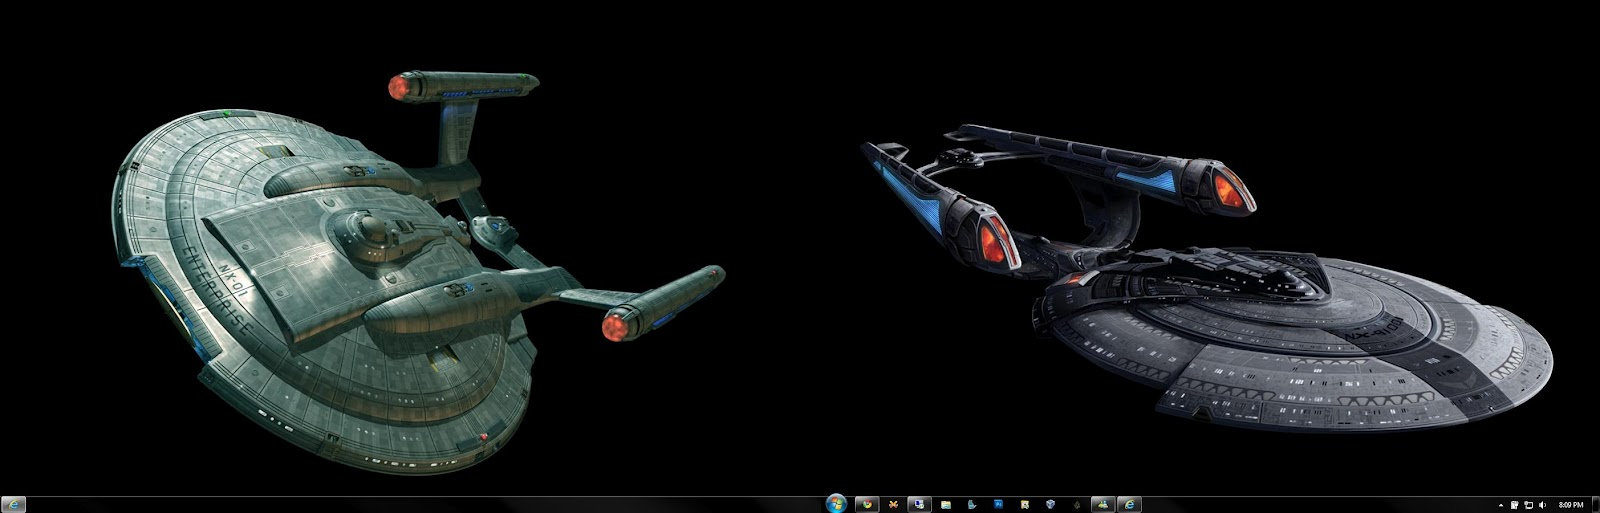 Dual monitor wallpaper windows 7  windows 7 dual monitor wallpaper 1600x513